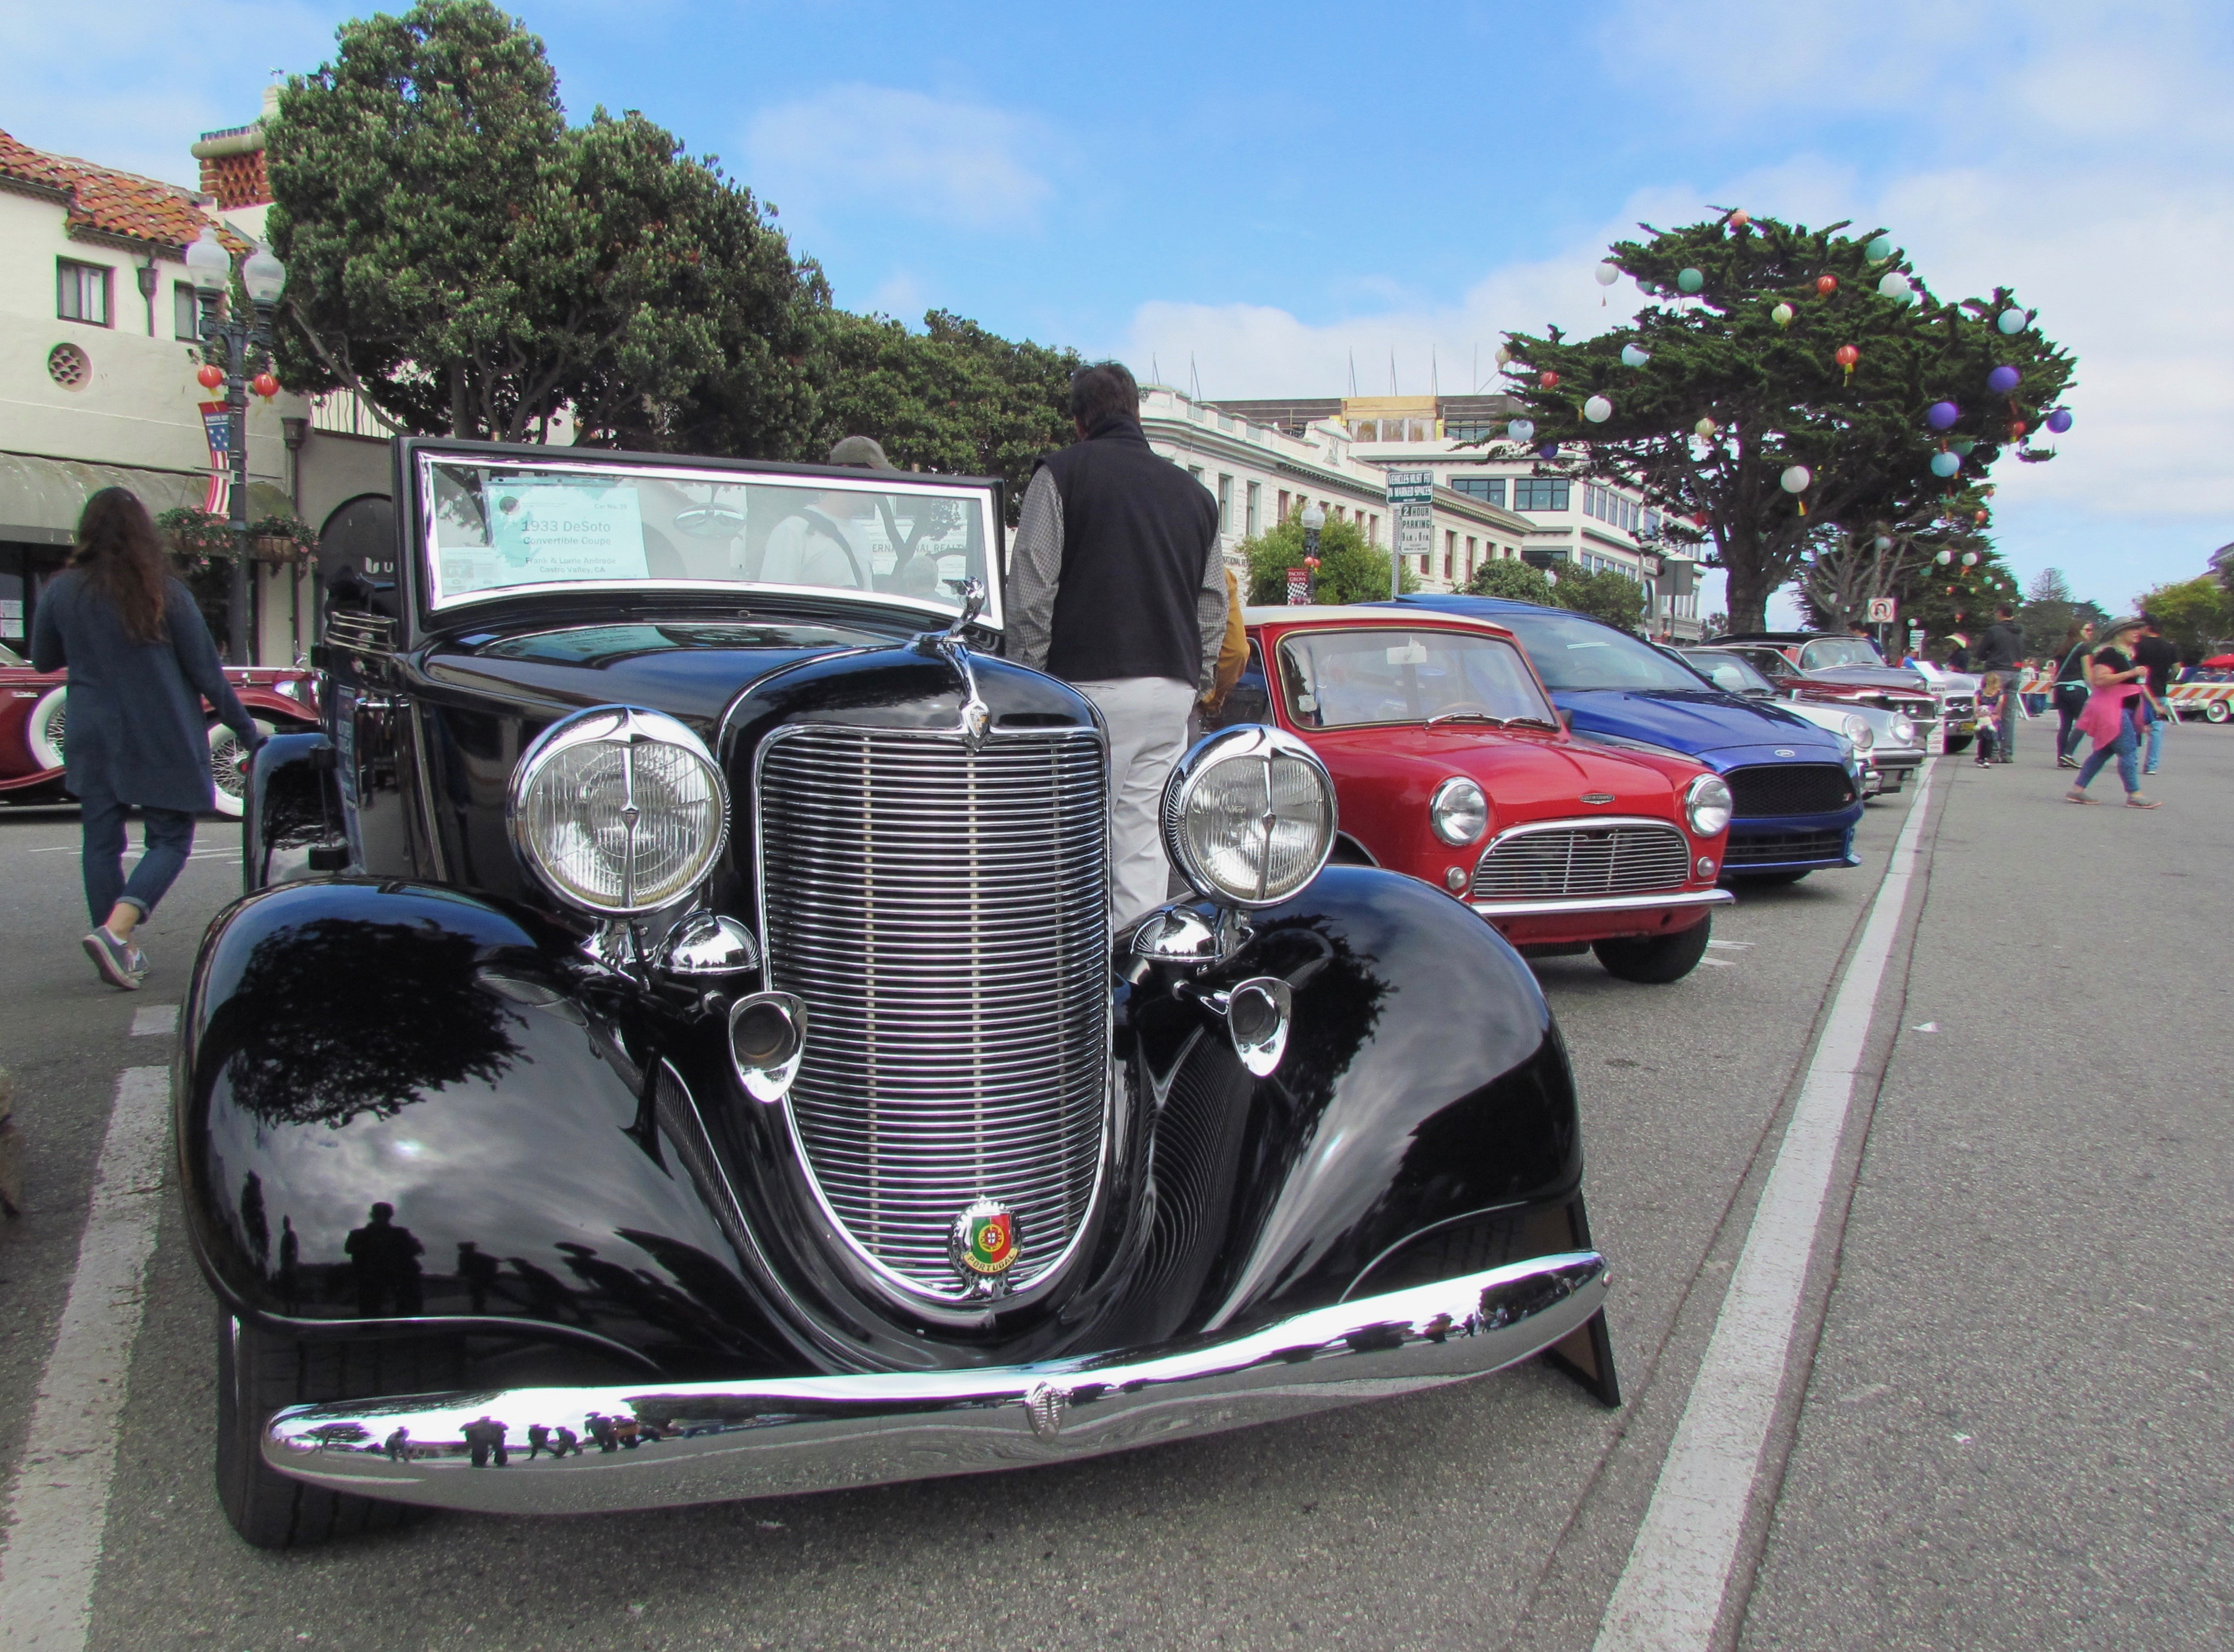 Monterey, Ultimate irony: Monterey Car Week is all about cars, but there's no place to park one, ClassicCars.com Journal